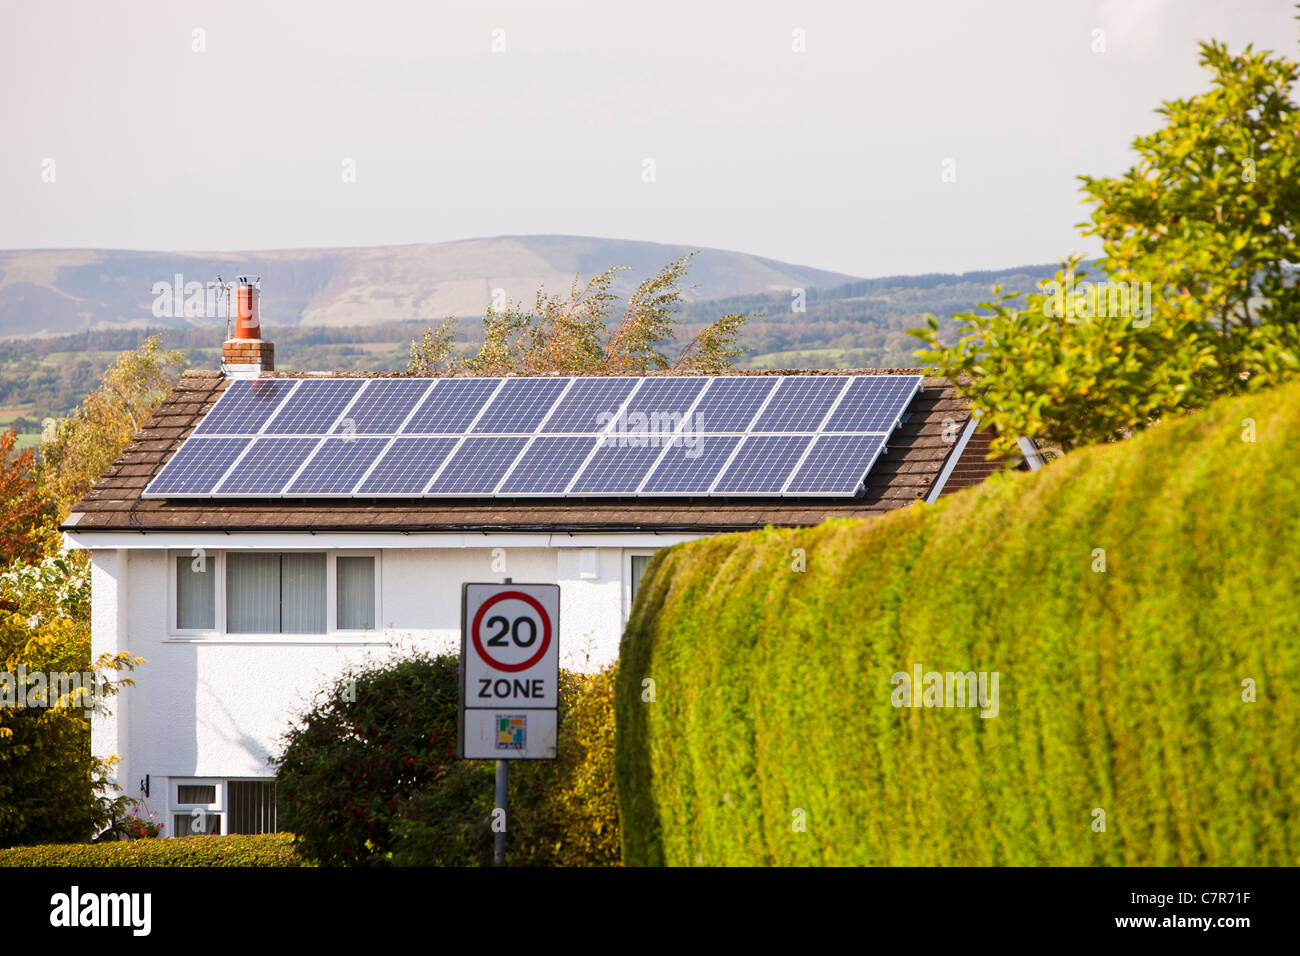 Solar electric panels on a house roof in clitheroe, Lancashire, UK. - Stock Image